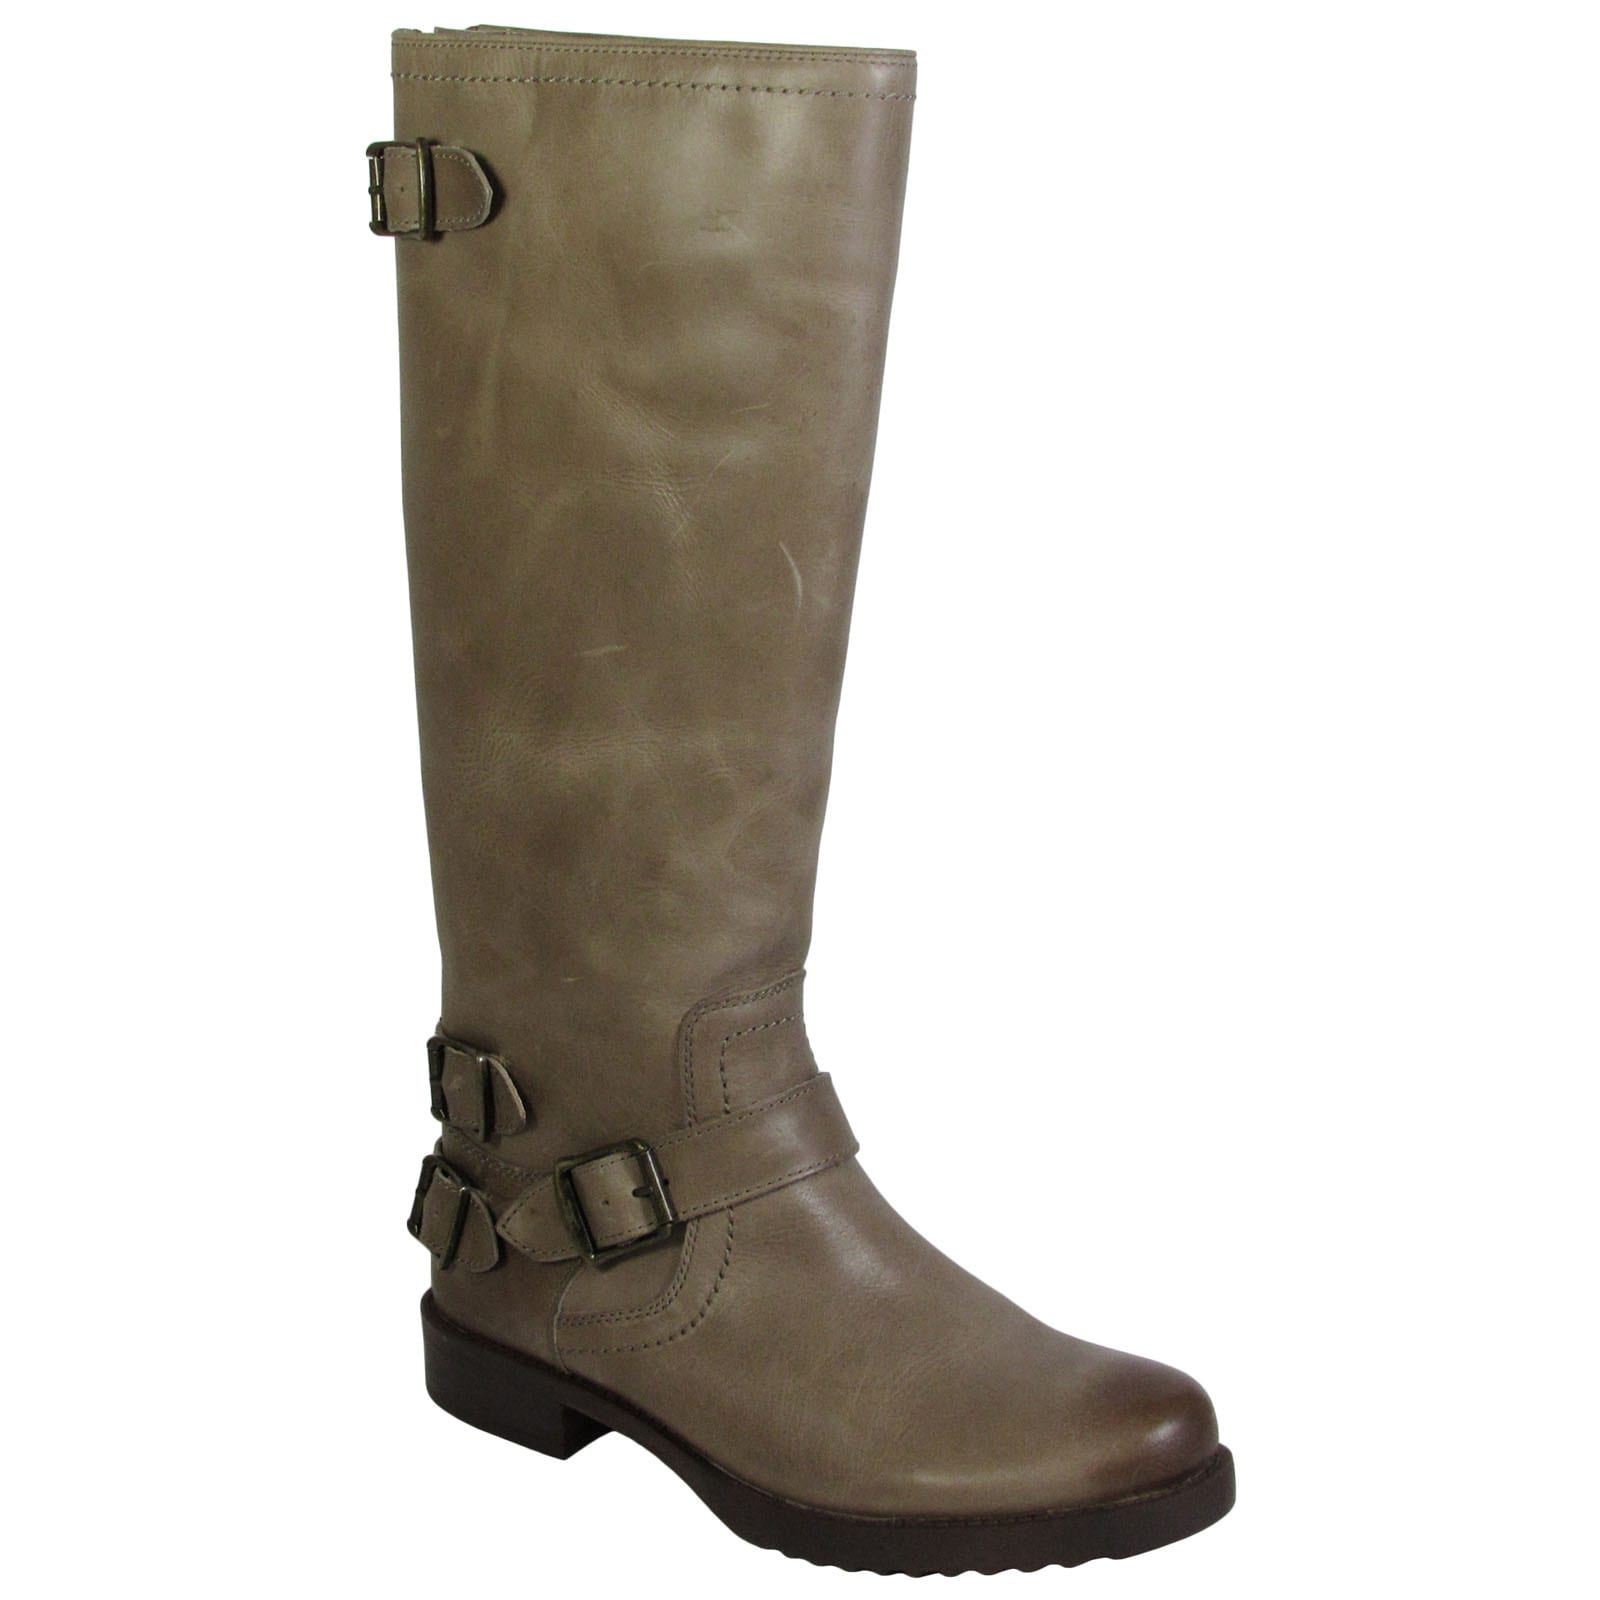 7c08f808071 Shop Arturo Chiang Women Ella Leather Riding Boots - Free Shipping Today -  Overstock - 10867153